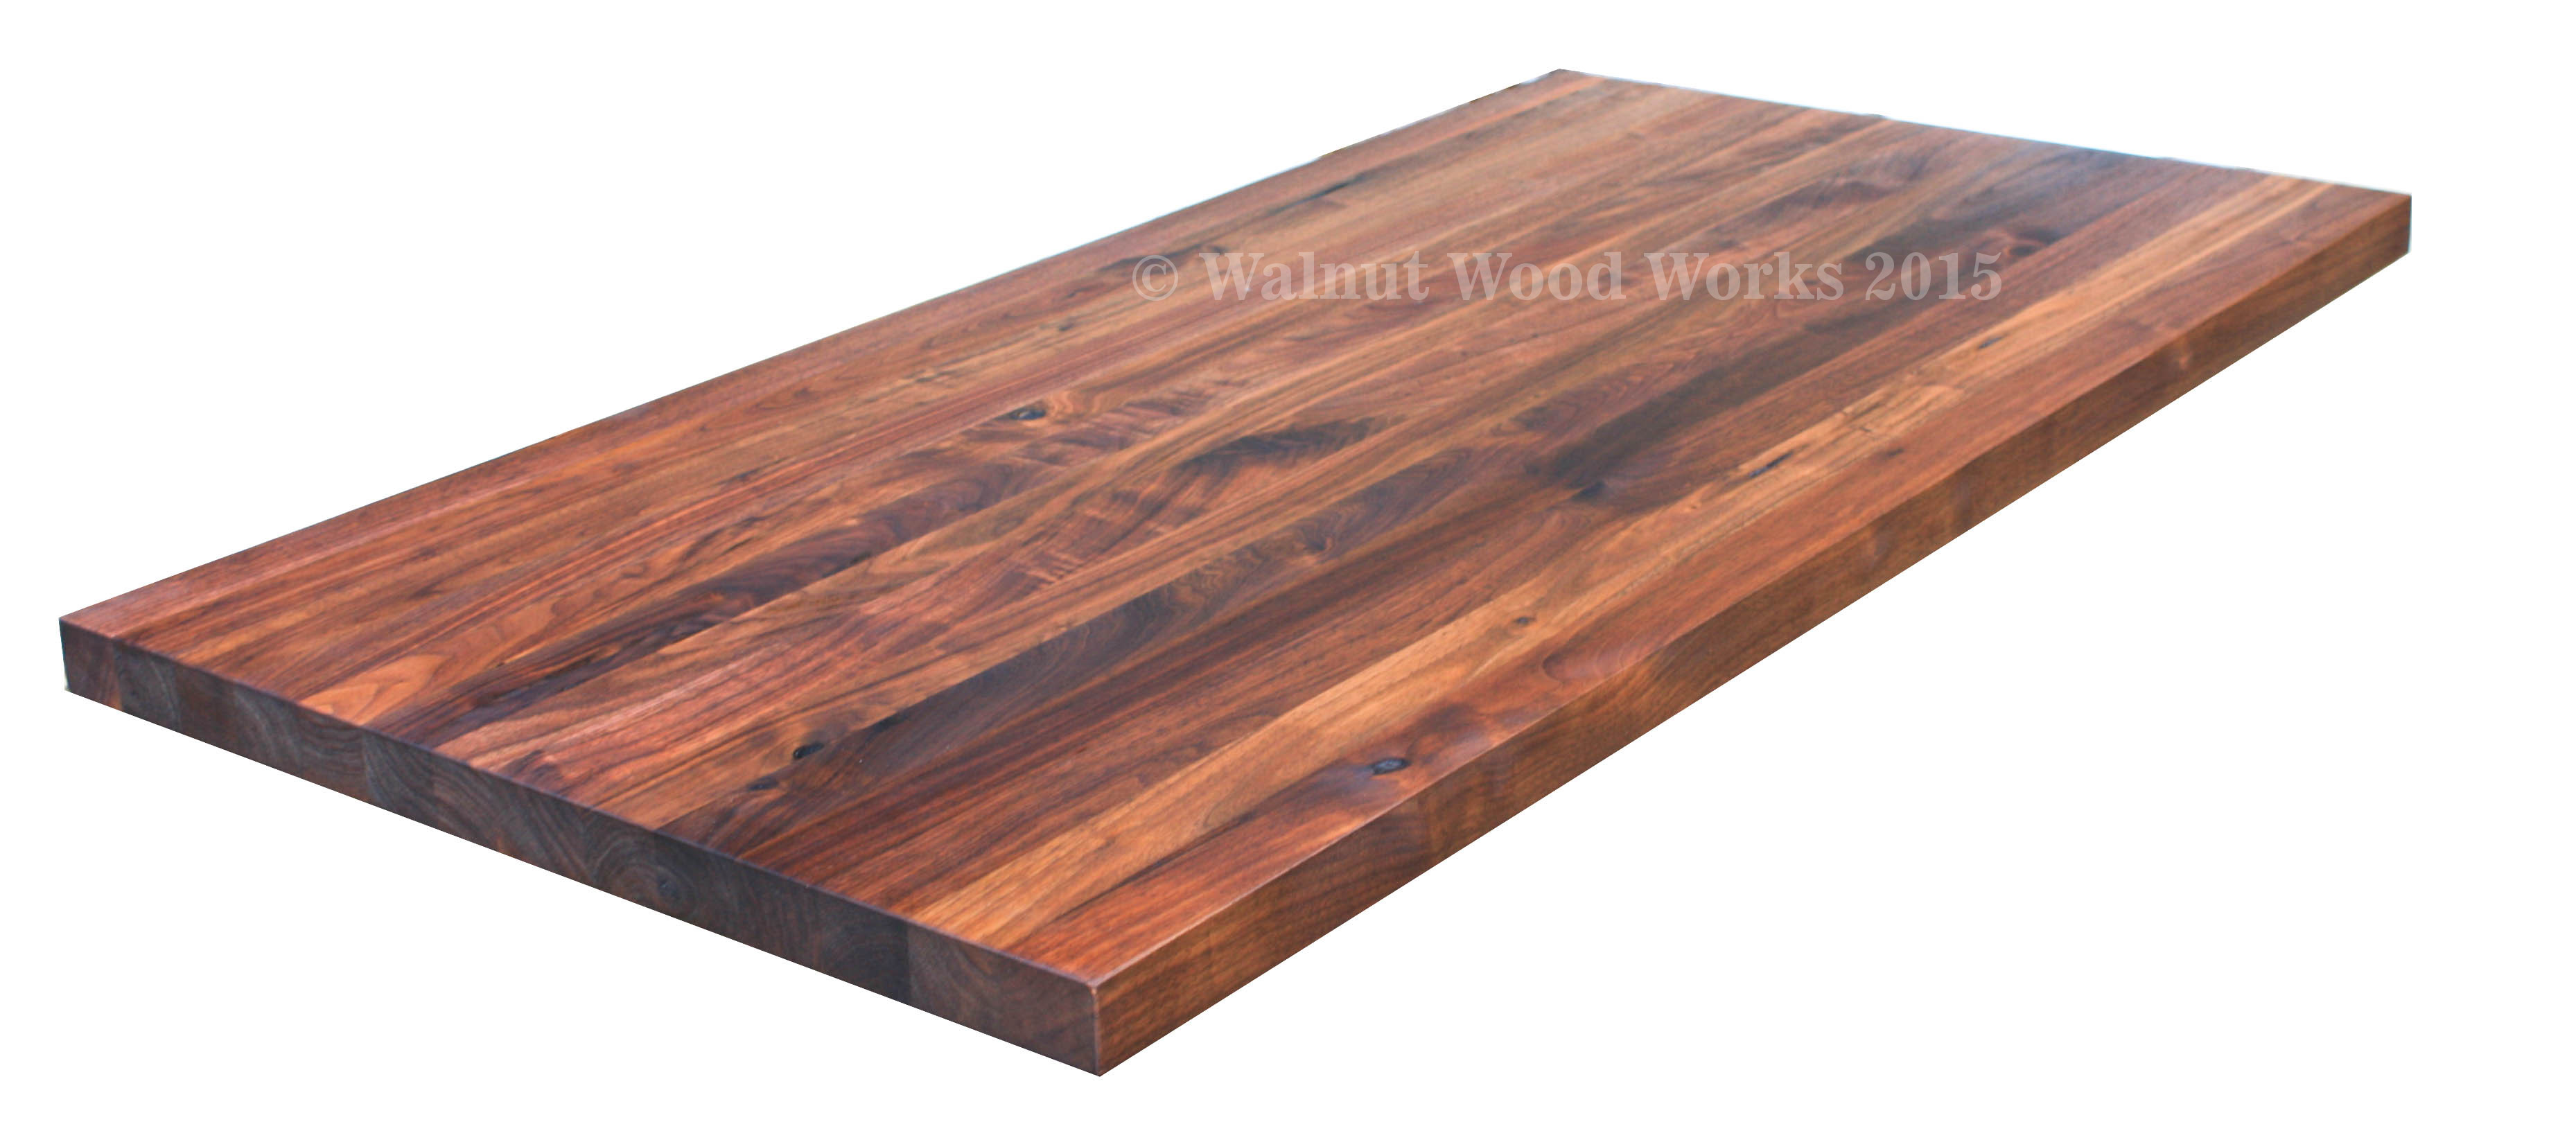 wood curious of beige cabinets large painting full best decor light color metal architectural countertops apartments small filing amazing fl granite studio with oak old look paint colors definition home schemes entryway cabinet types design size imanada melbourne high pictures white ideas countertop black for kitchen